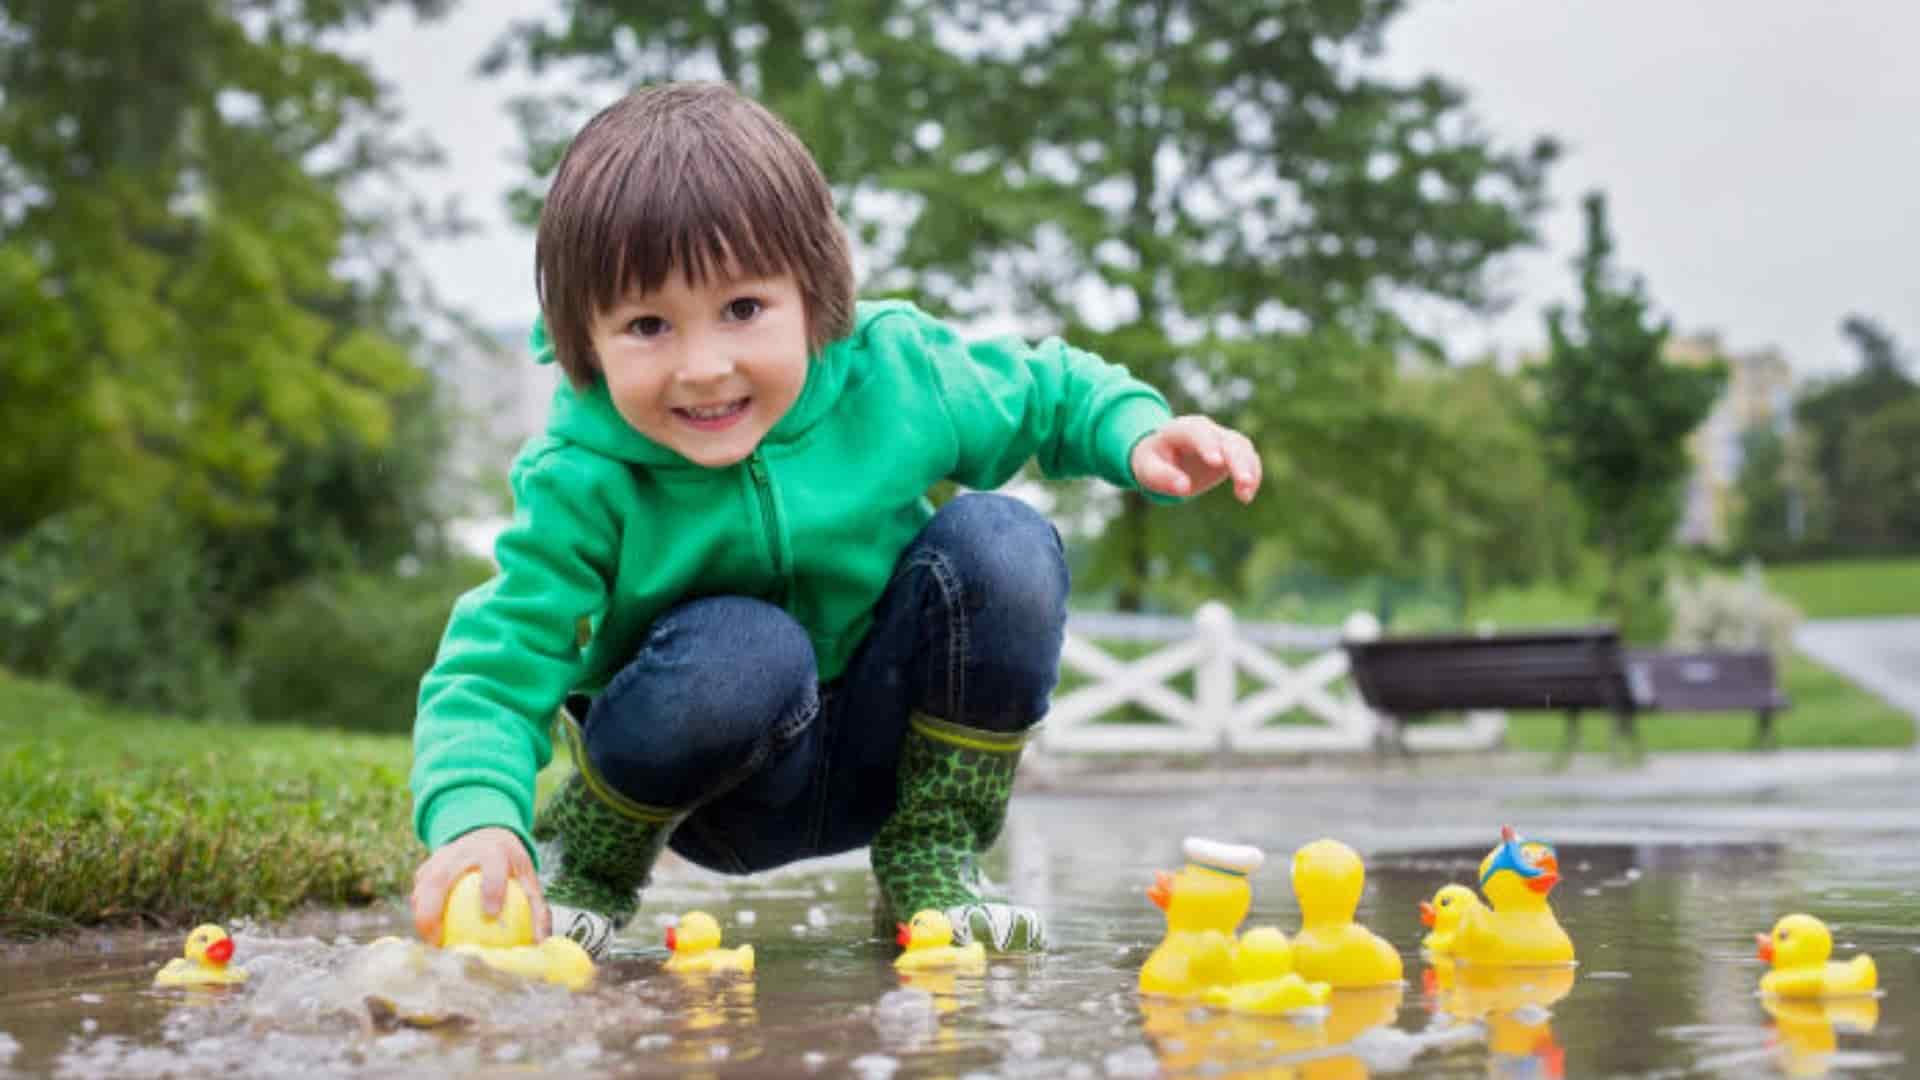 Play with Water Toys in Puddles